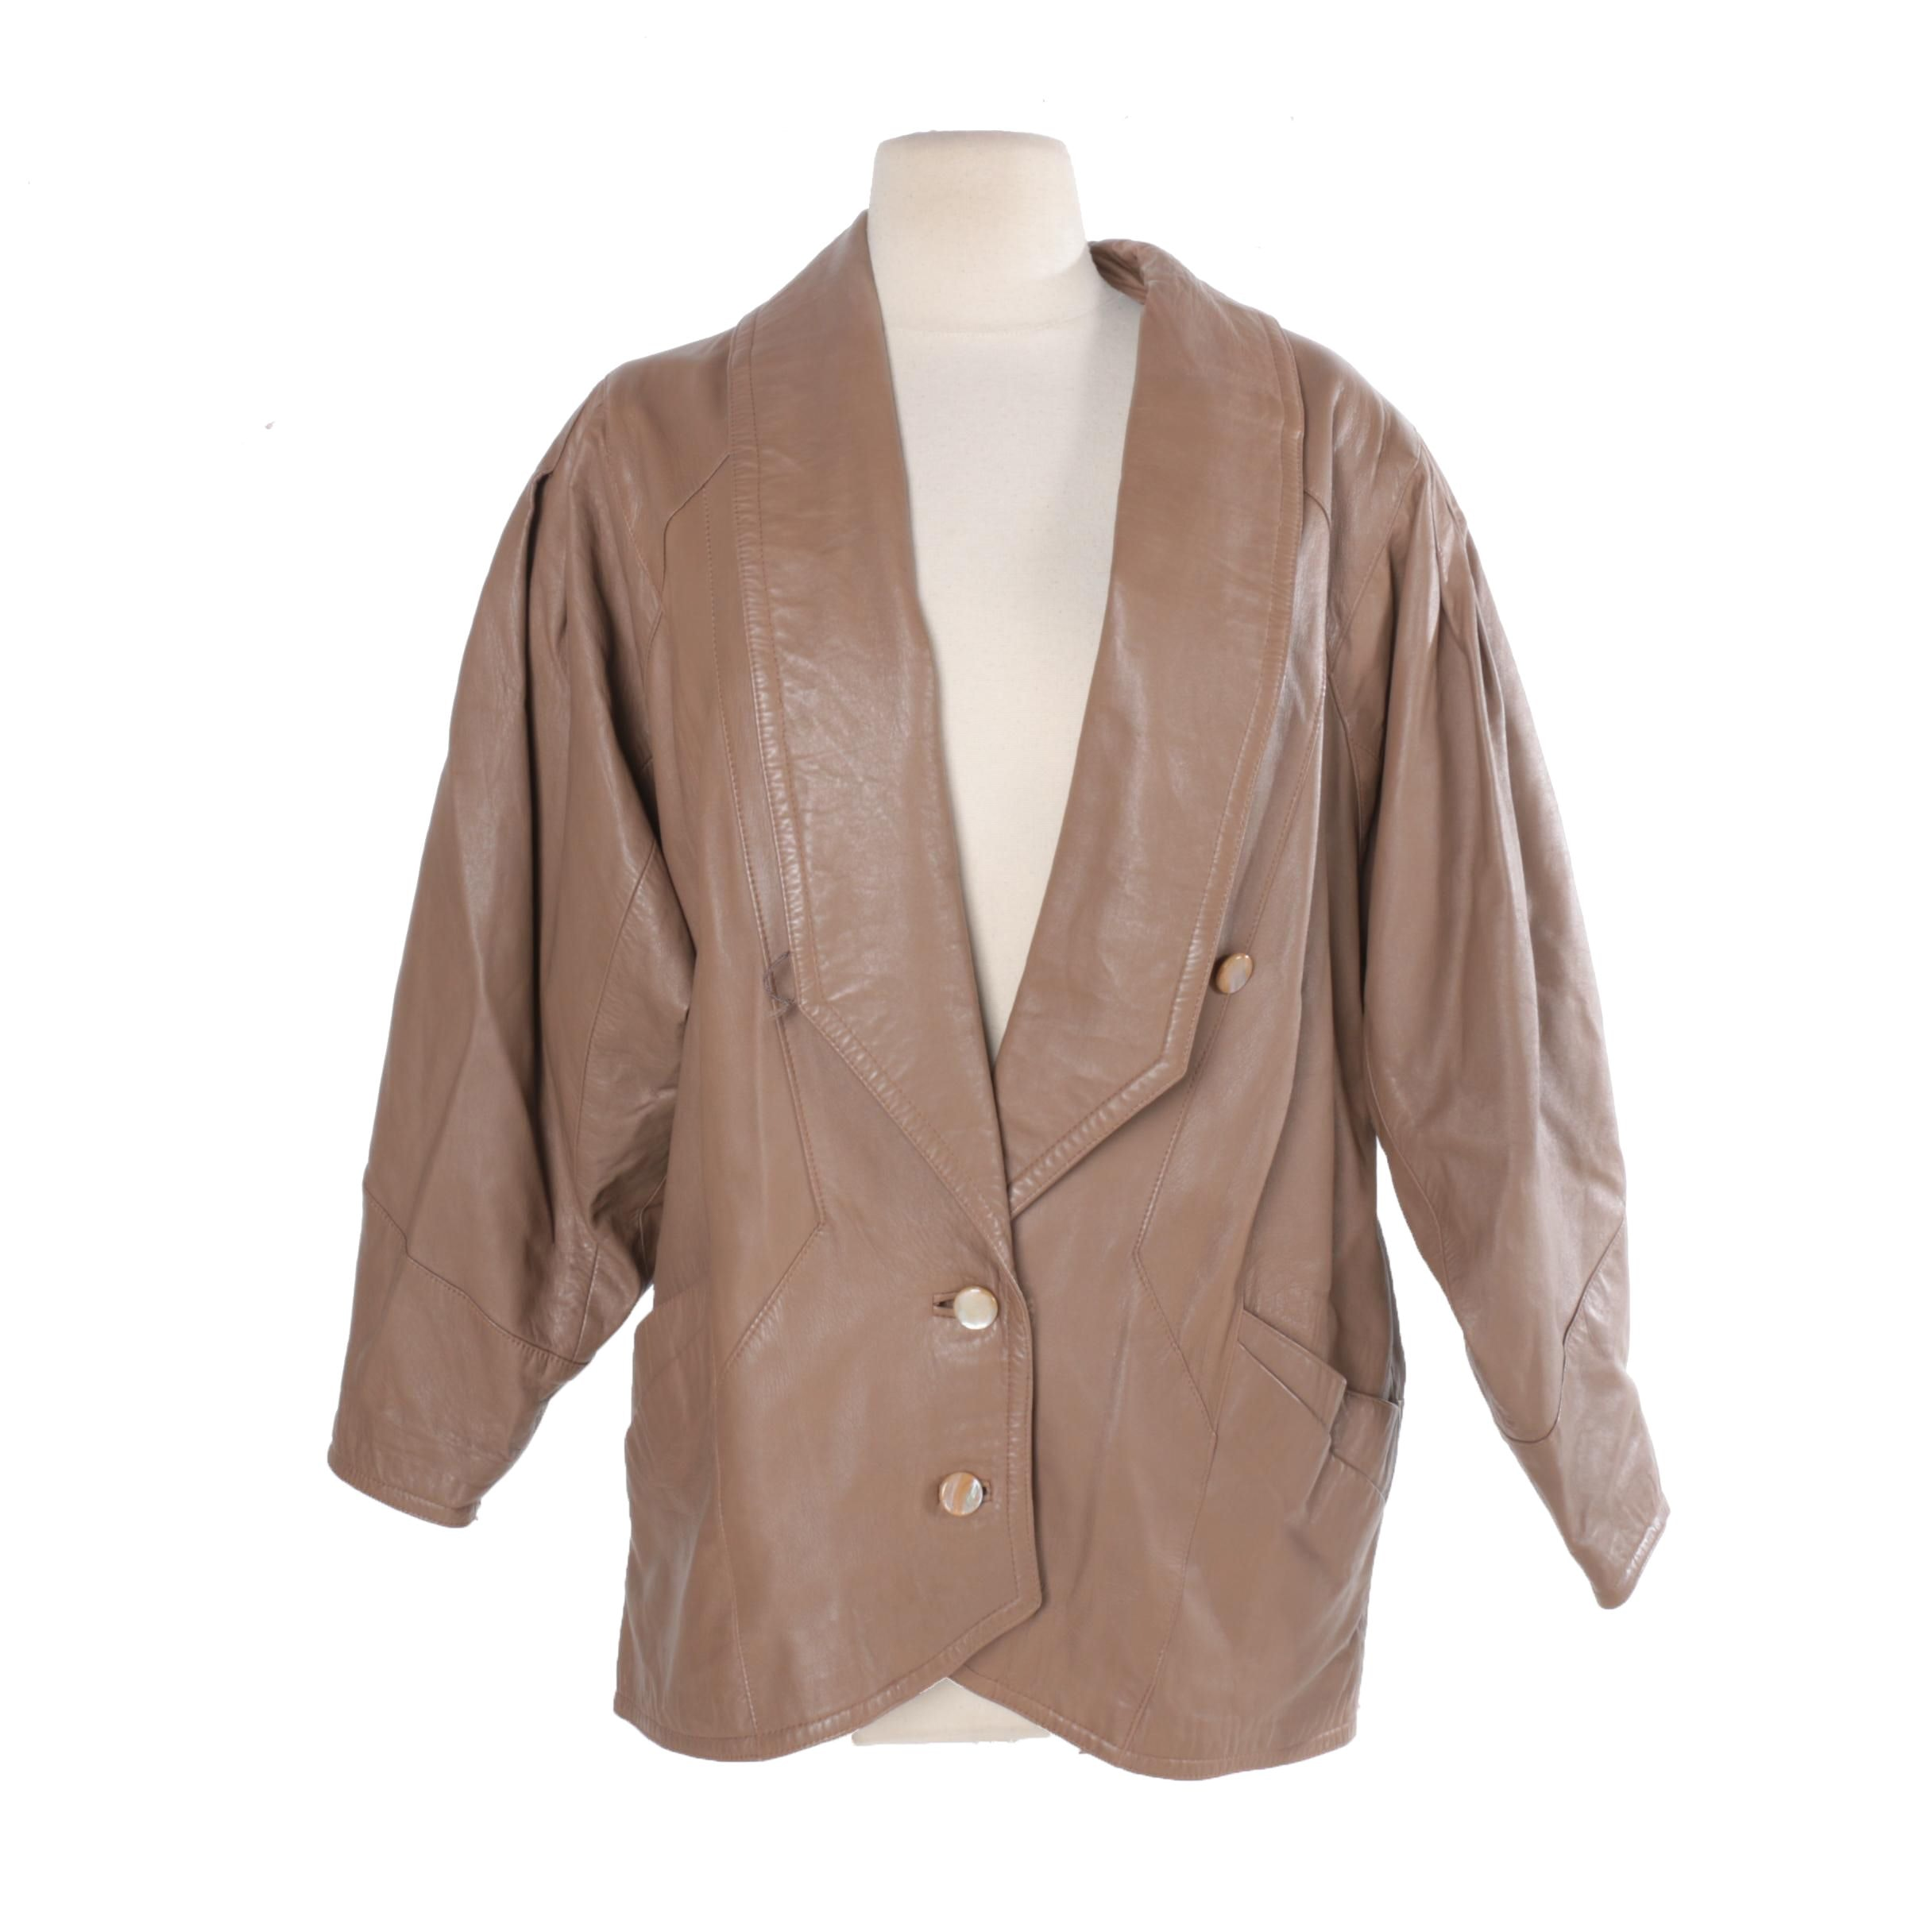 Vera Pelle Faux Leather Jacket